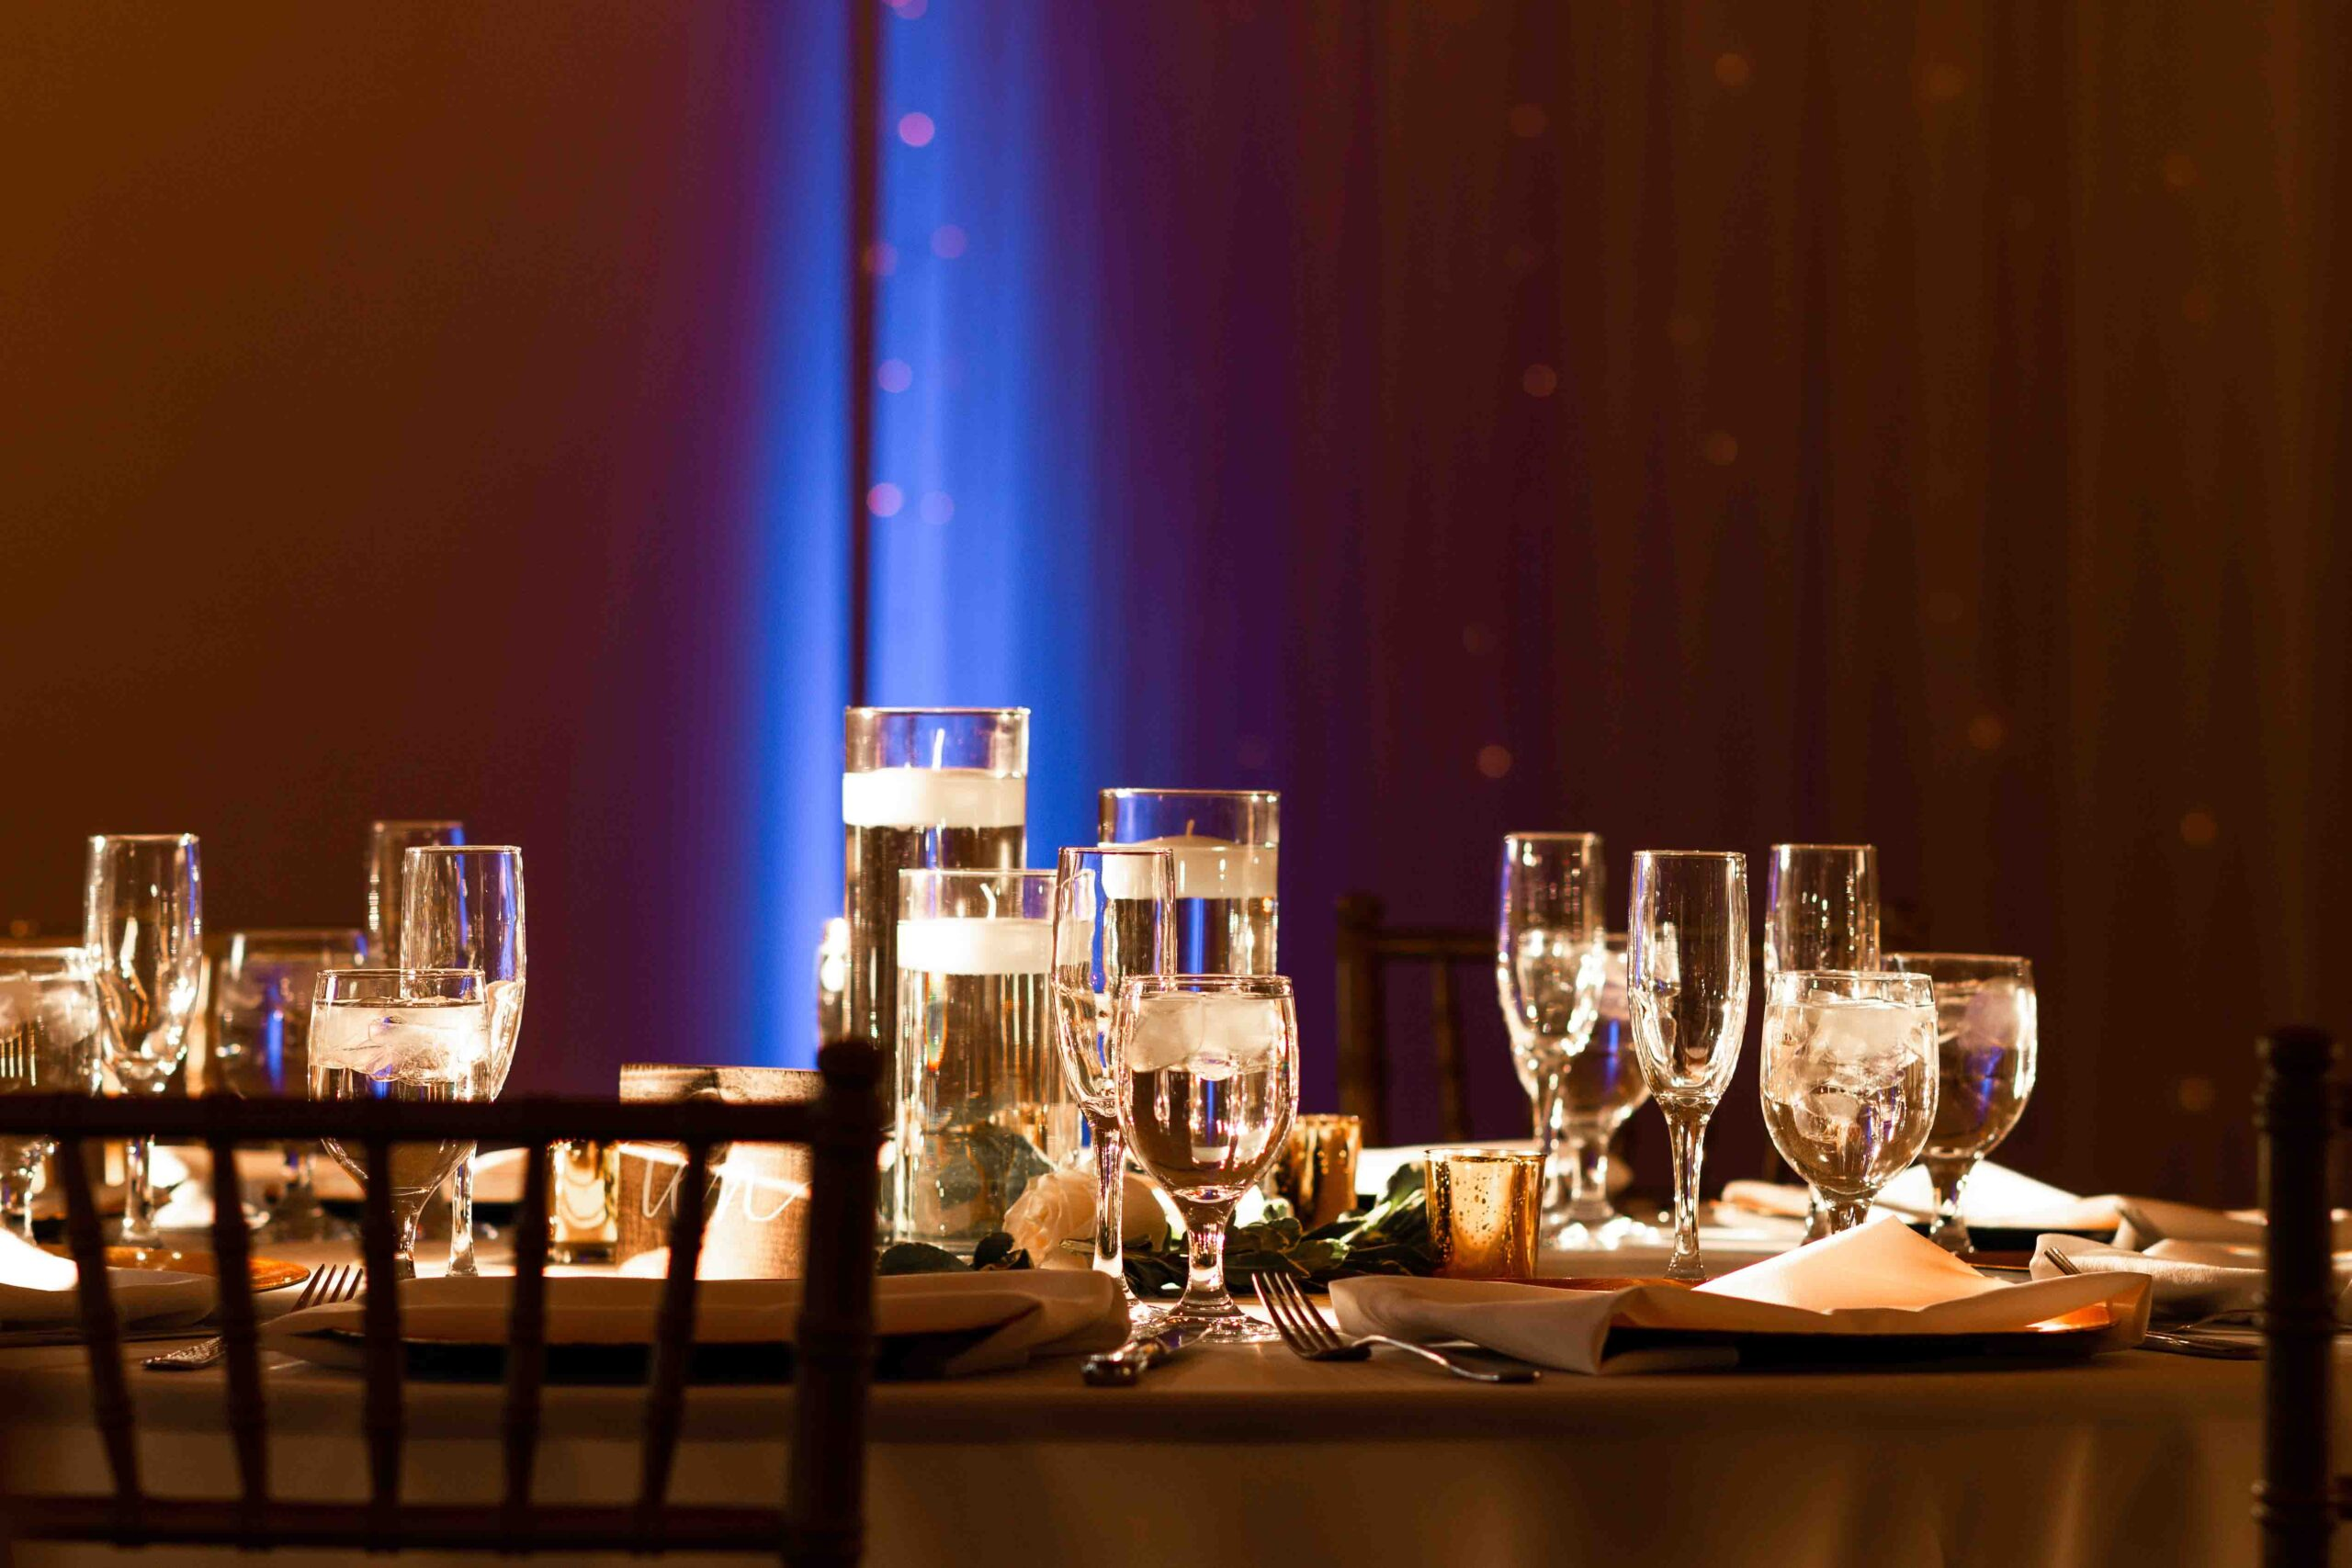 glass silverware and plates at a wedding with blue uplighting in the background